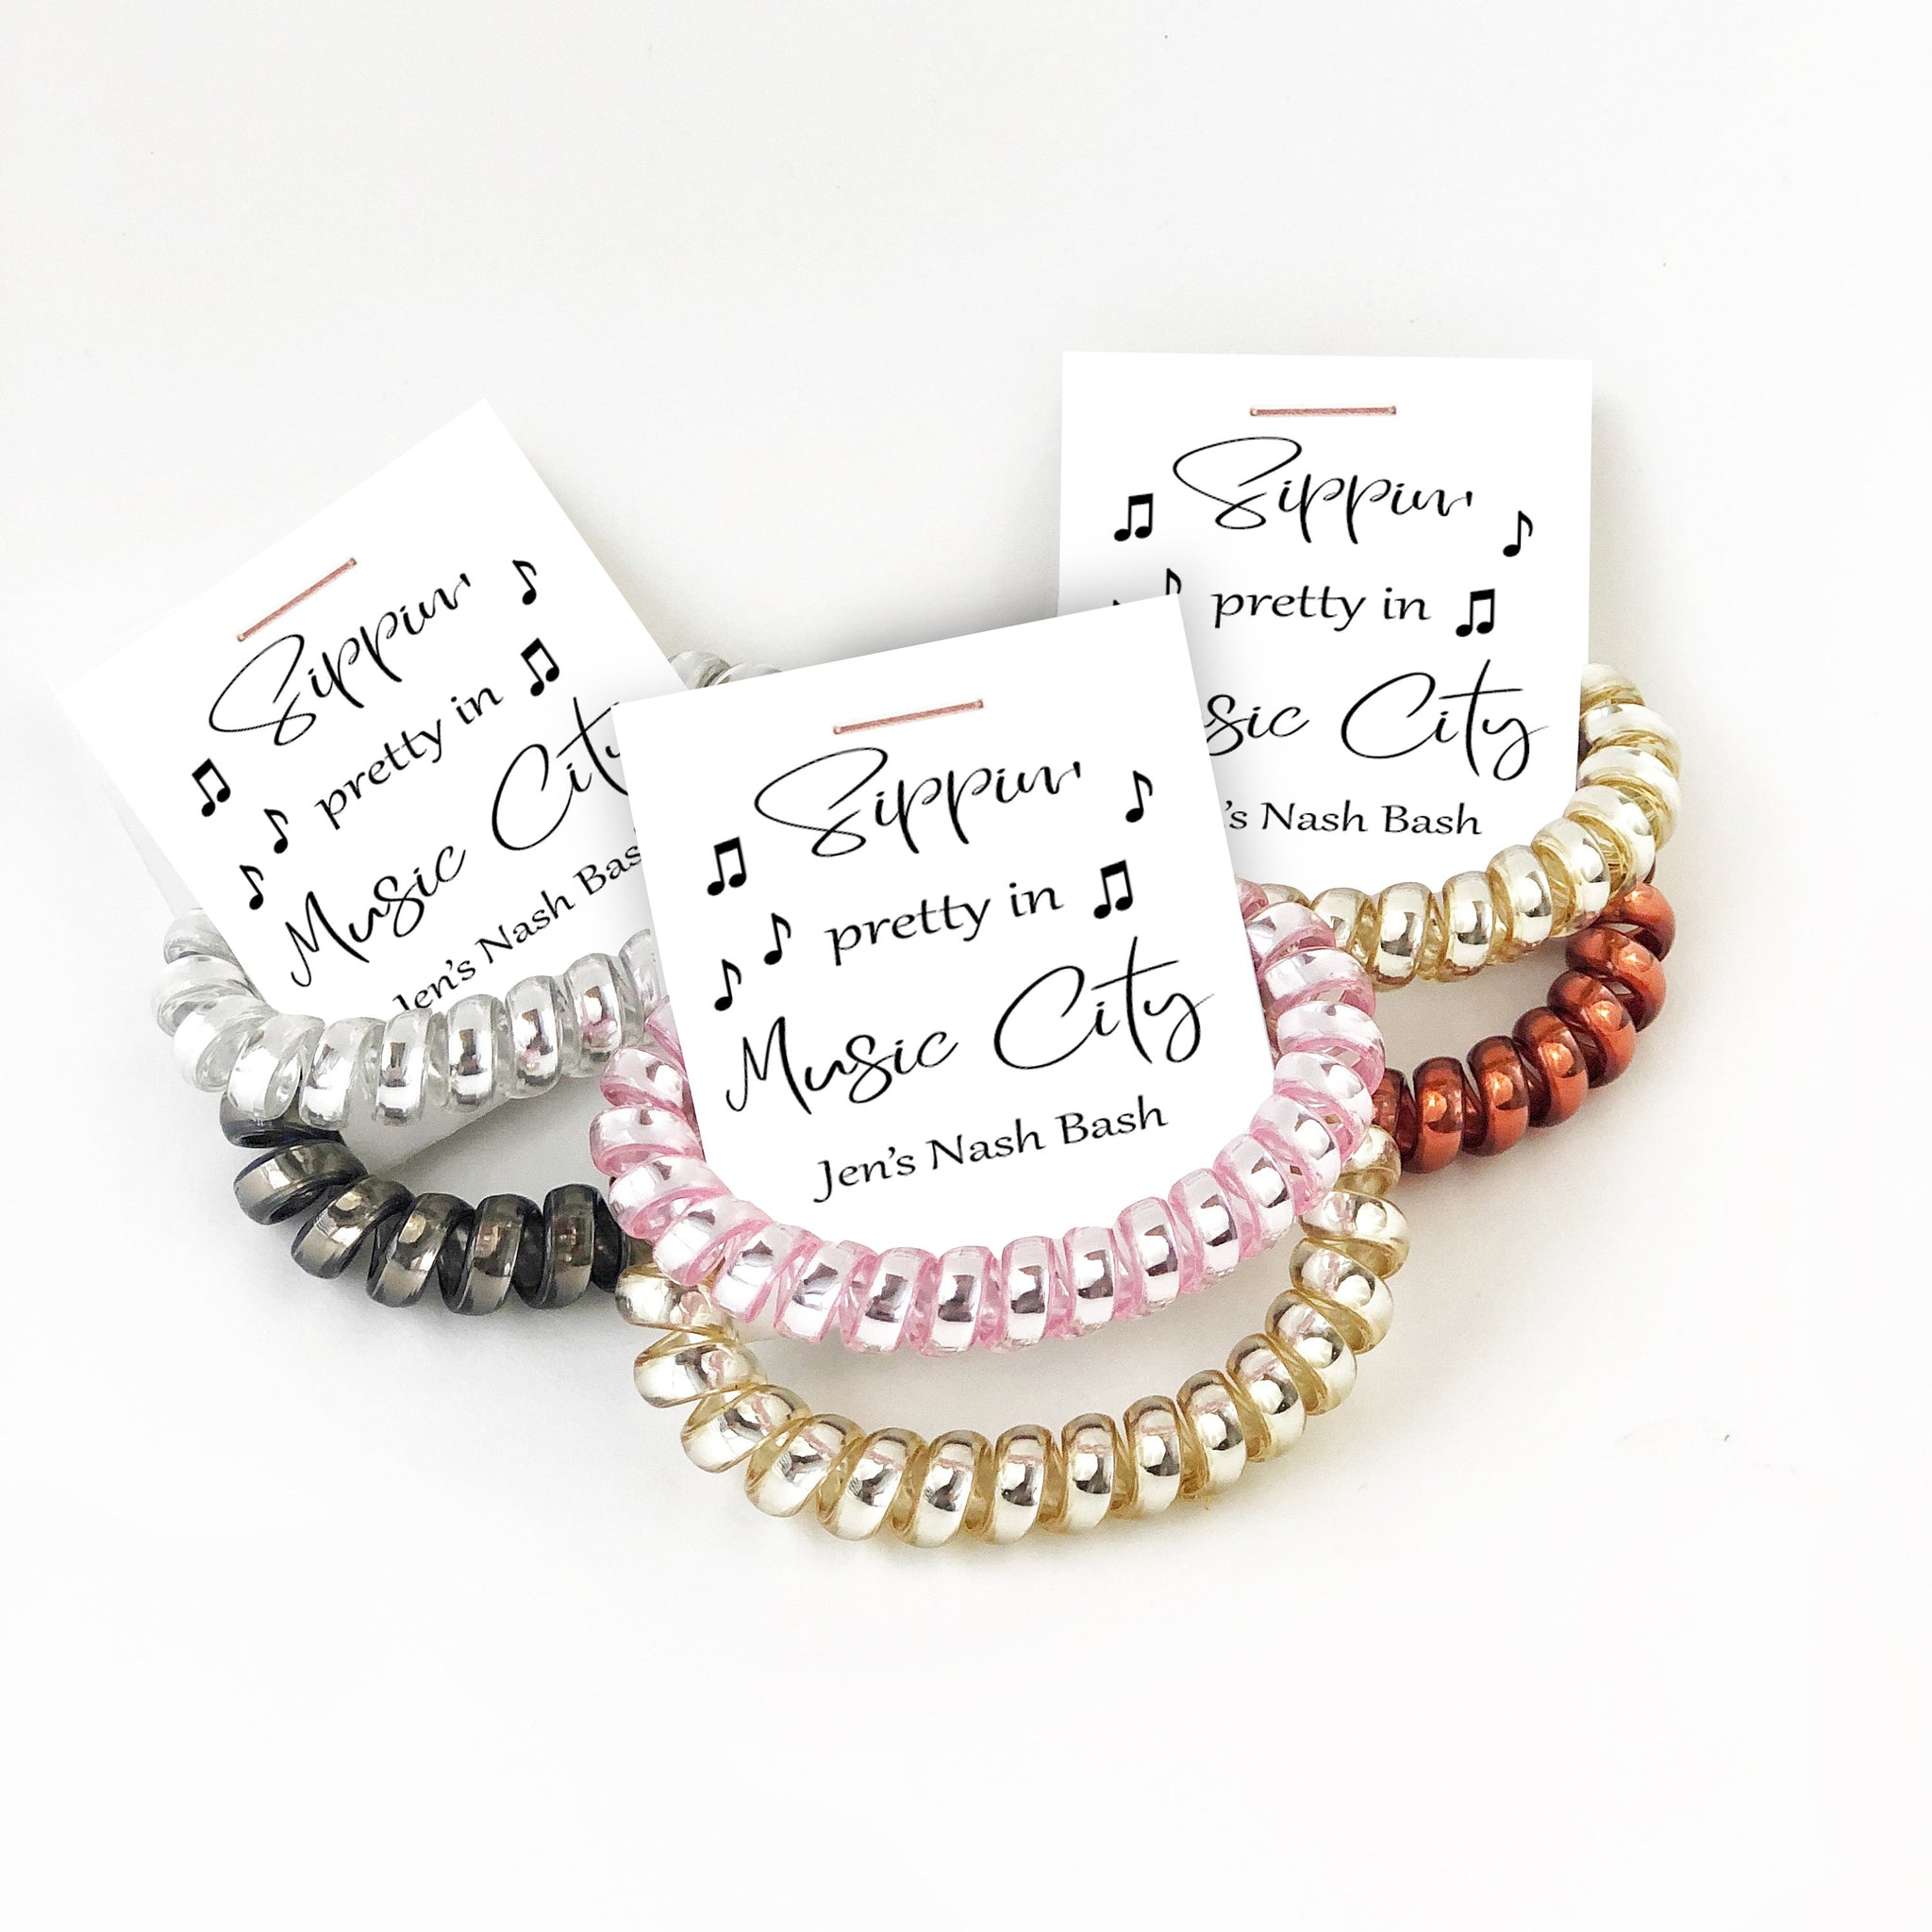 Sippin Pretty in Music City Bachelorette, Spiral Hair Ties, Nashville Bachelorette Party Favors, Nash Bash, Nashville Bach Favors - @PlumPolkaDot